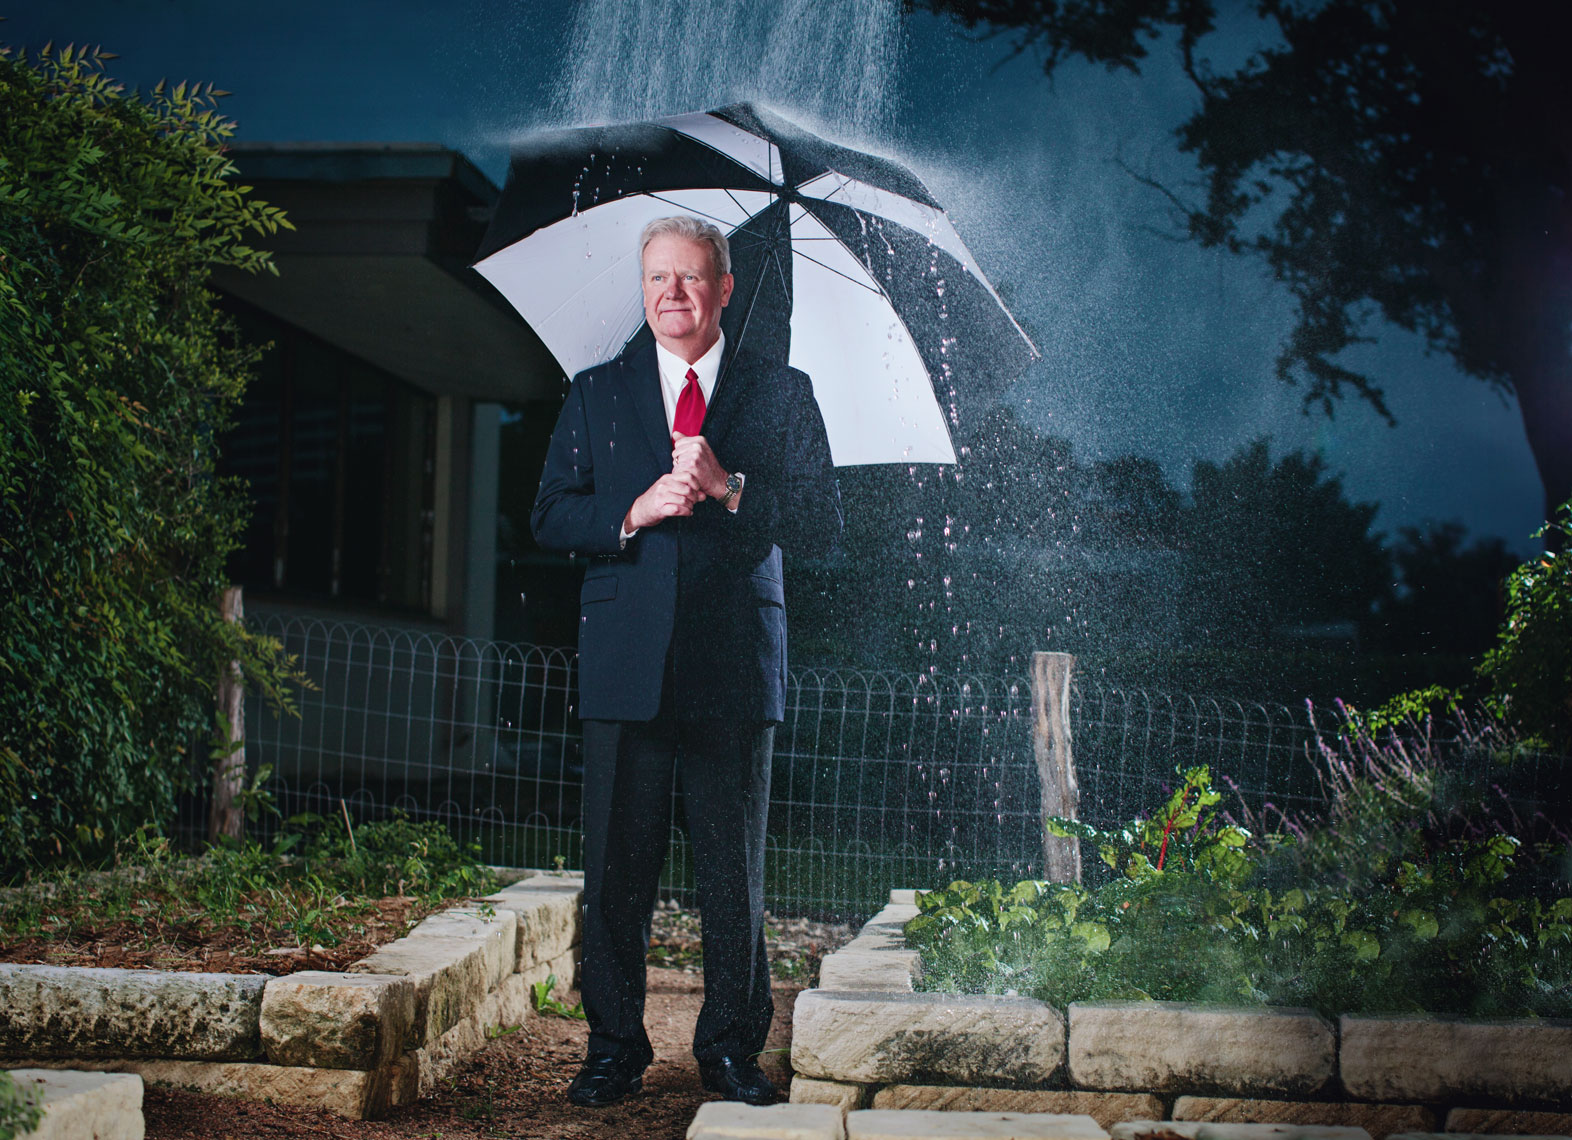 Steve Browne, KSAT Weather Man, photographed for San Antonio Magazine by Celebrity and Editorial Portrait photographer Josh Huskin.